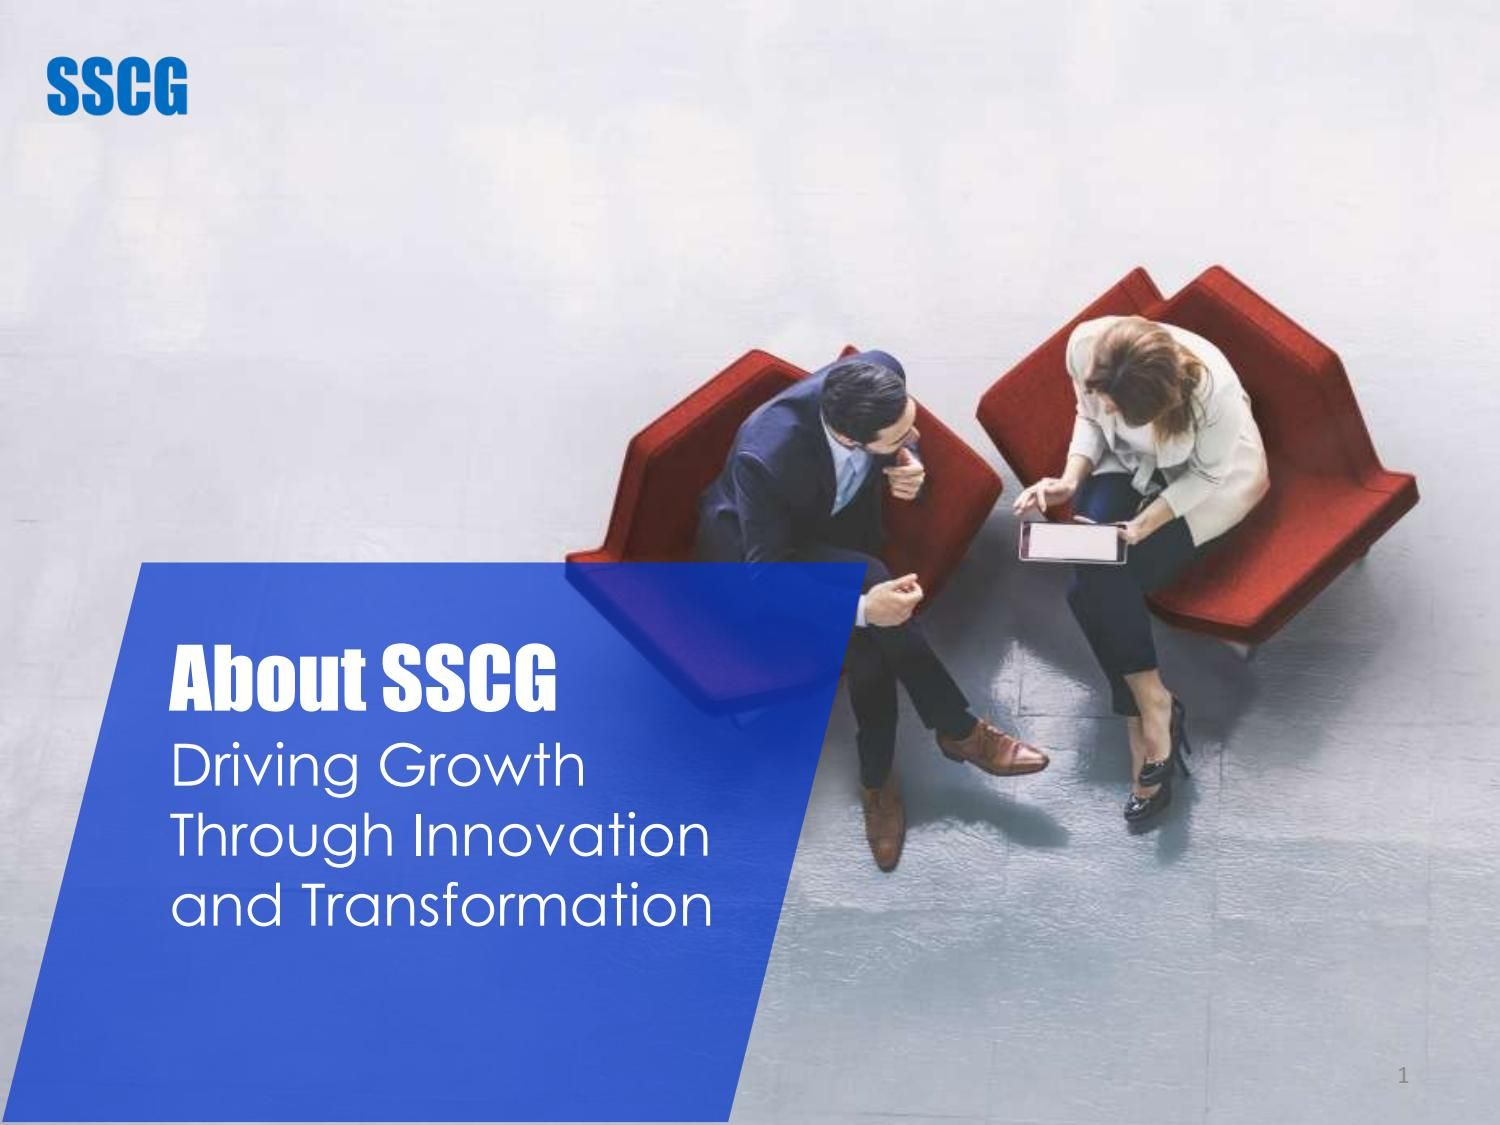 About sscg driving growth through innovation and